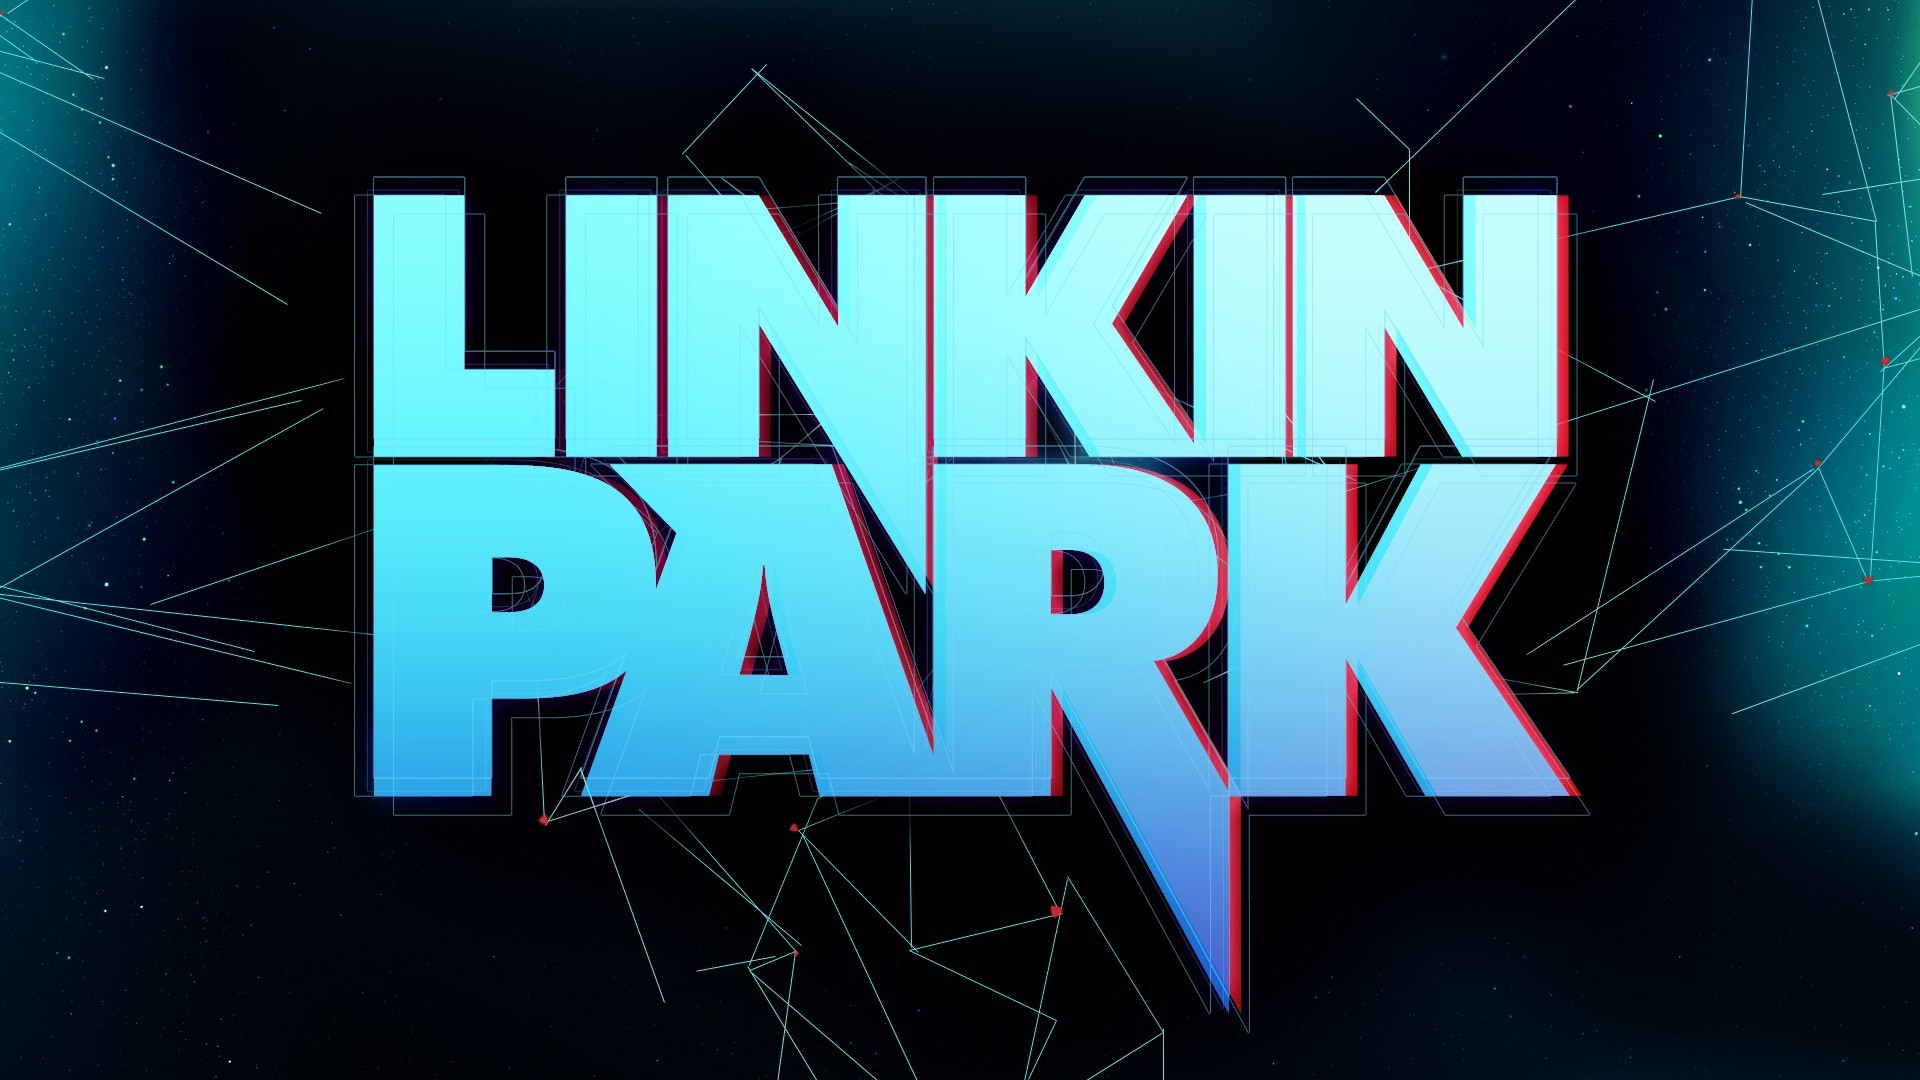 Music linkin park HD Wallpaper